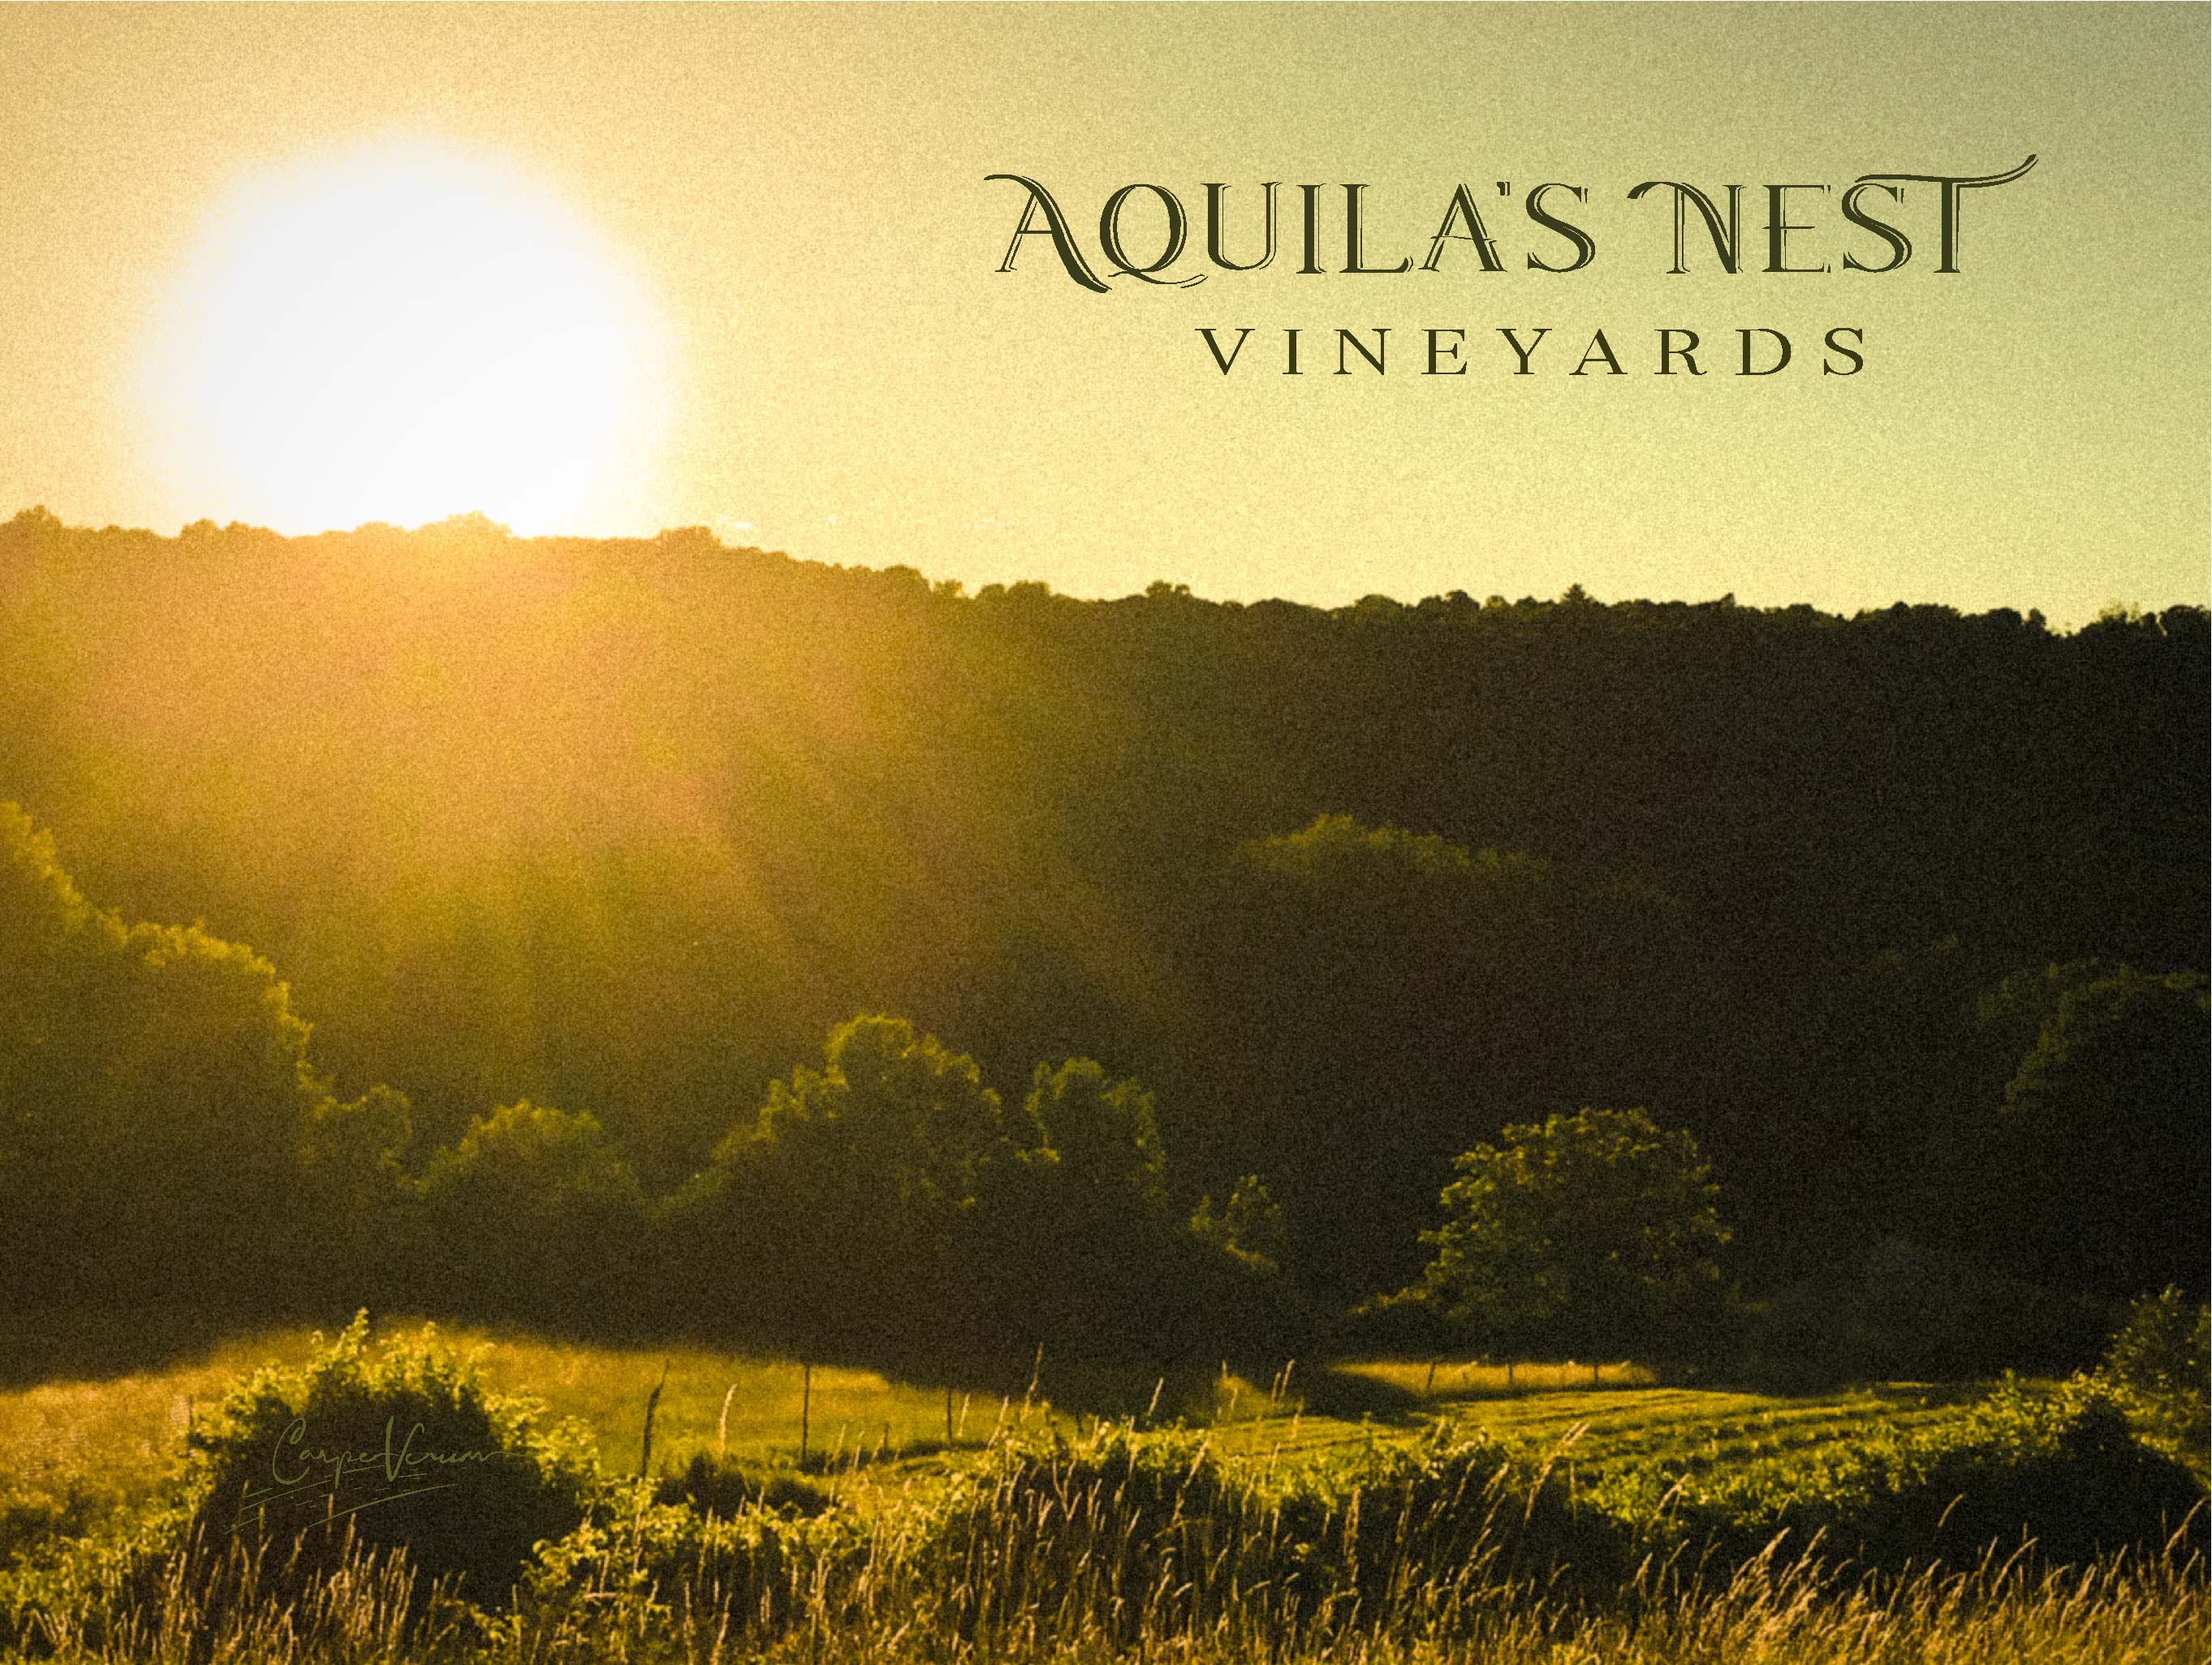 Aquila's Nest Vineyards Sunst